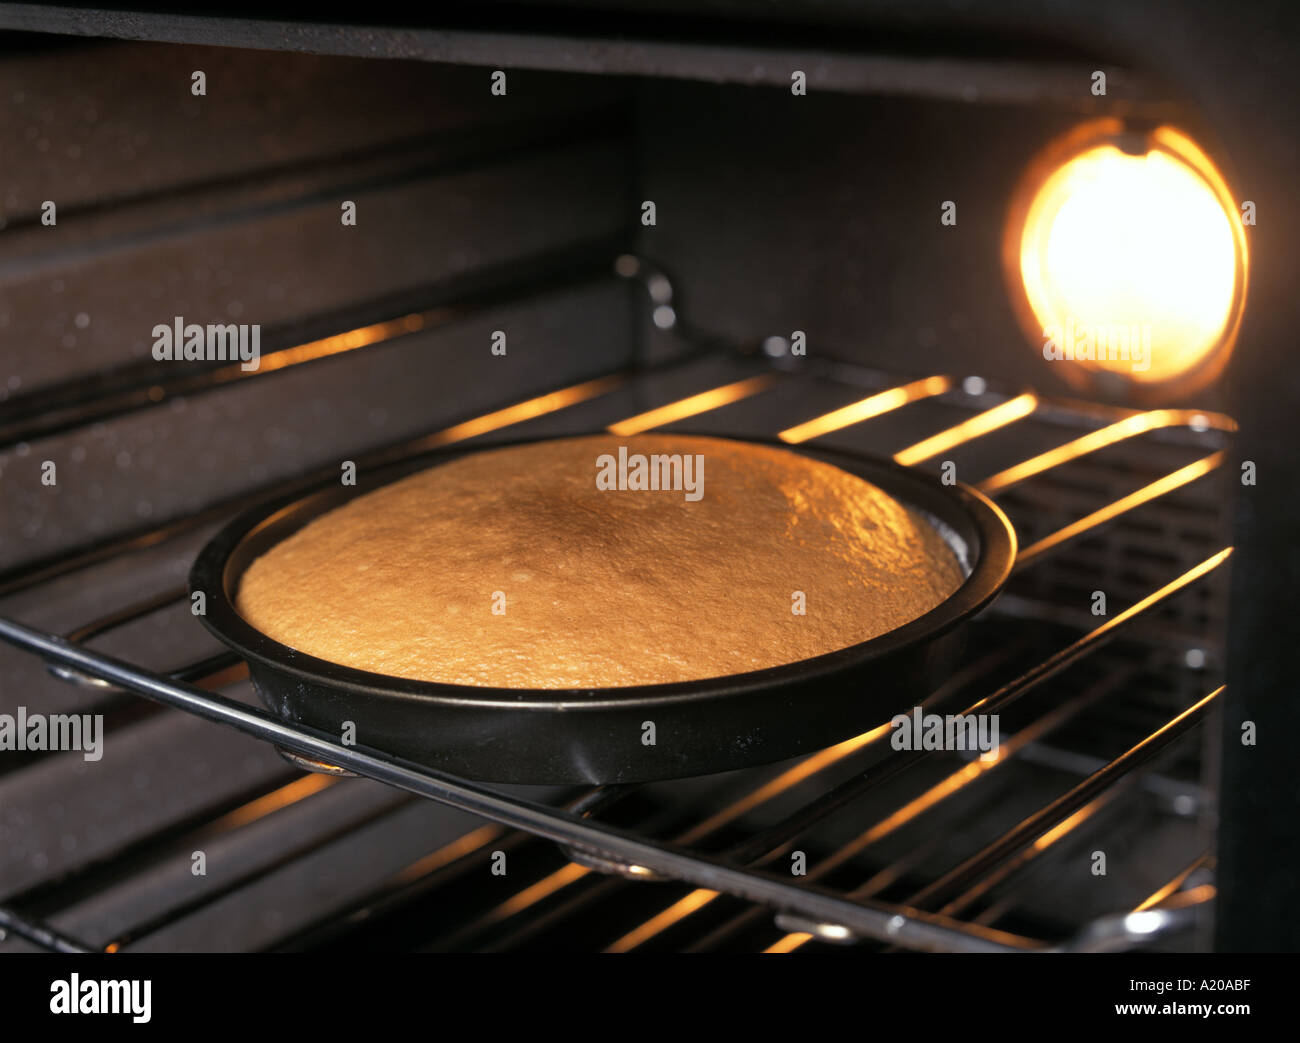 a cake in oven after baking see A23221 for before baking - Stock Image